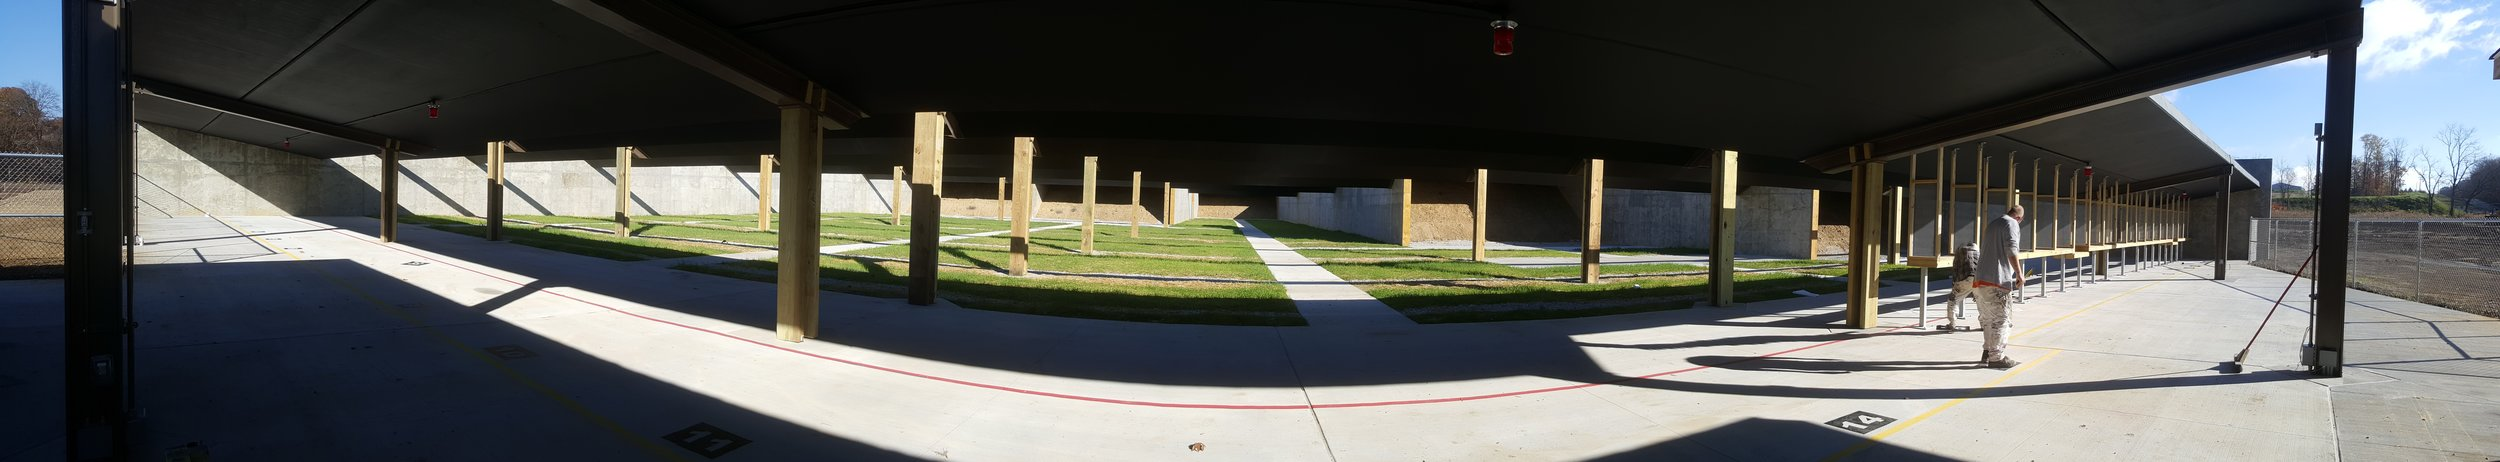 Deer Creek Shooting Range - Cloverdale Panarama 2.jpg